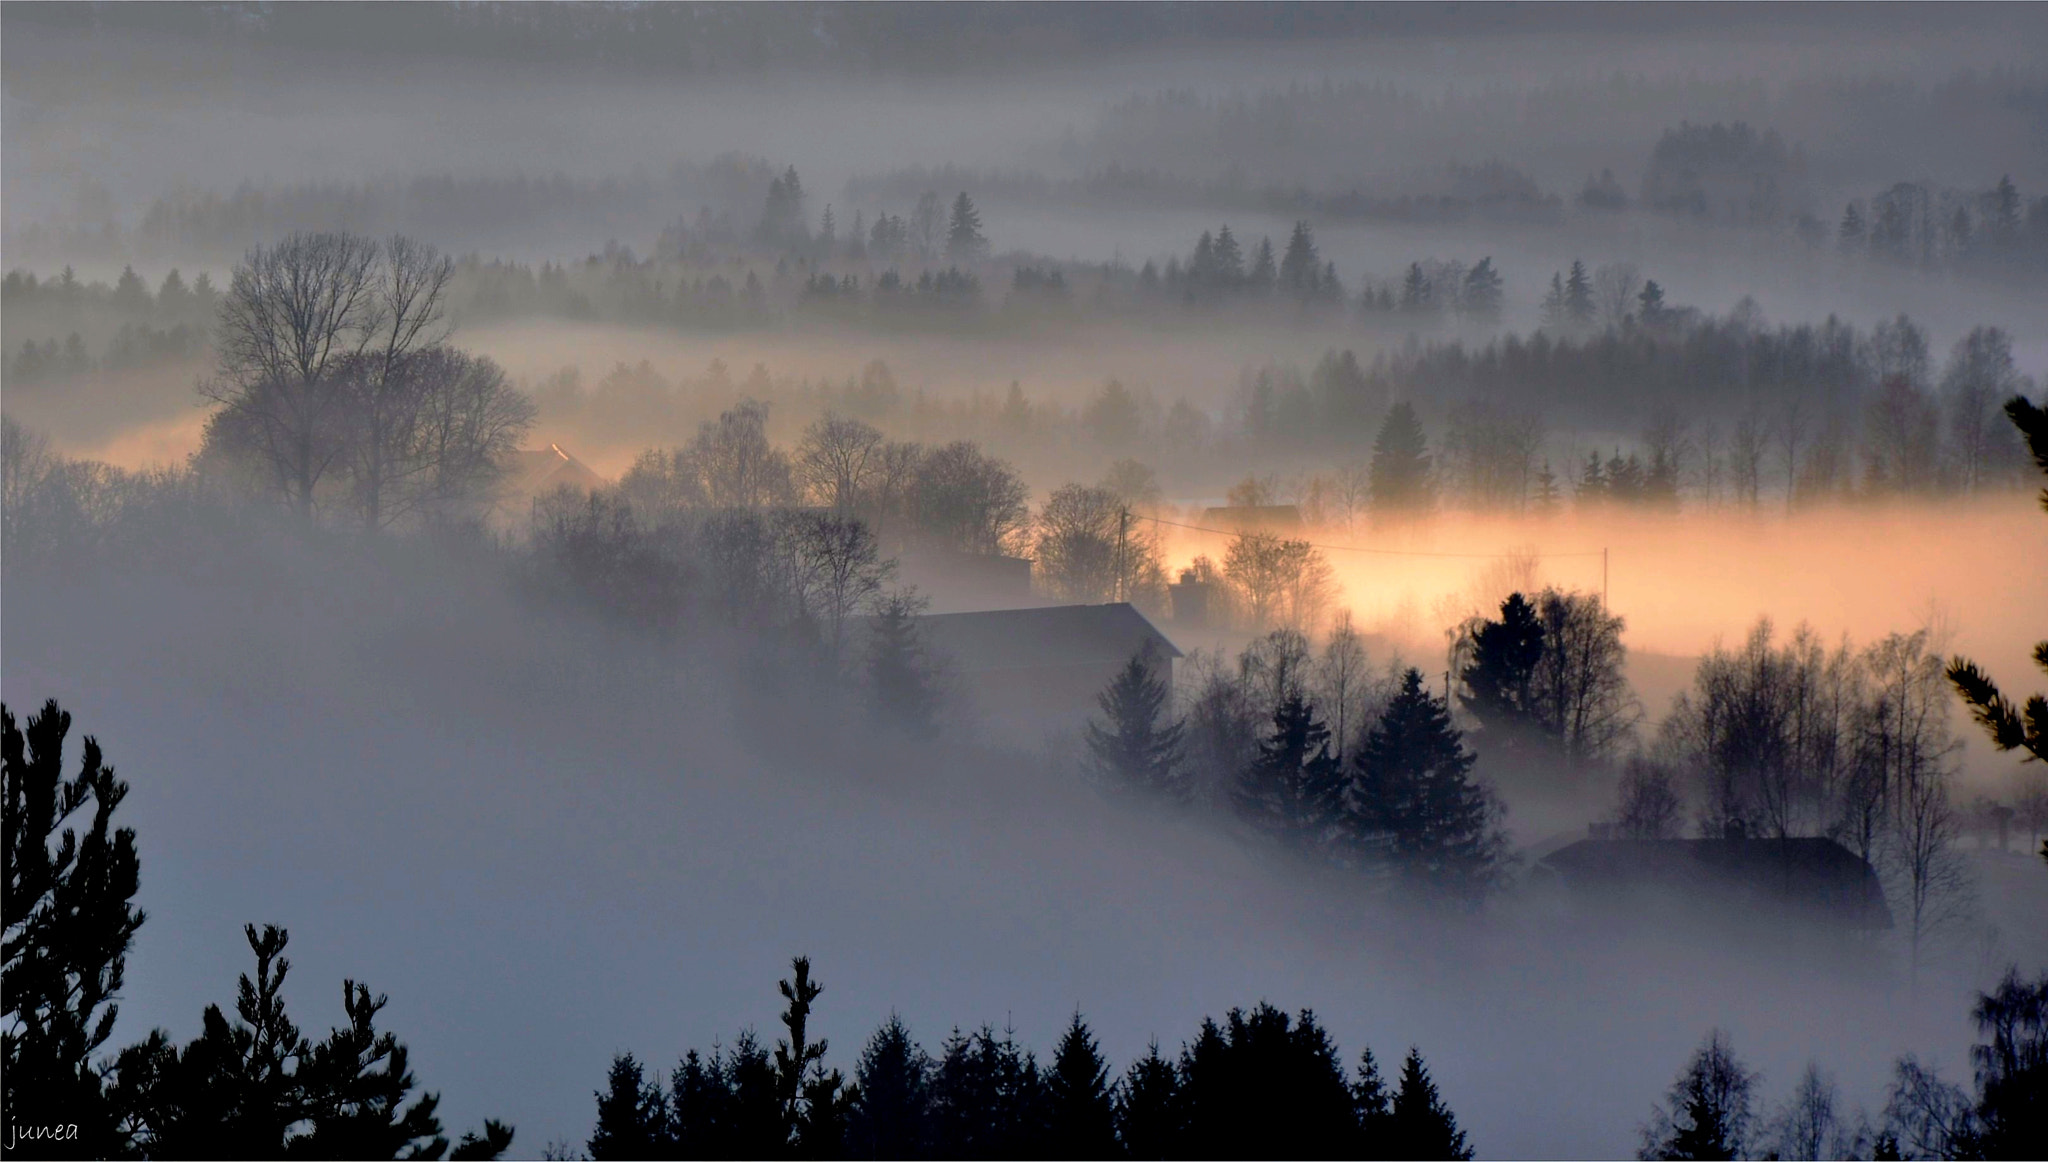 Photograph Sunlight coming through the fog by June A on 500px